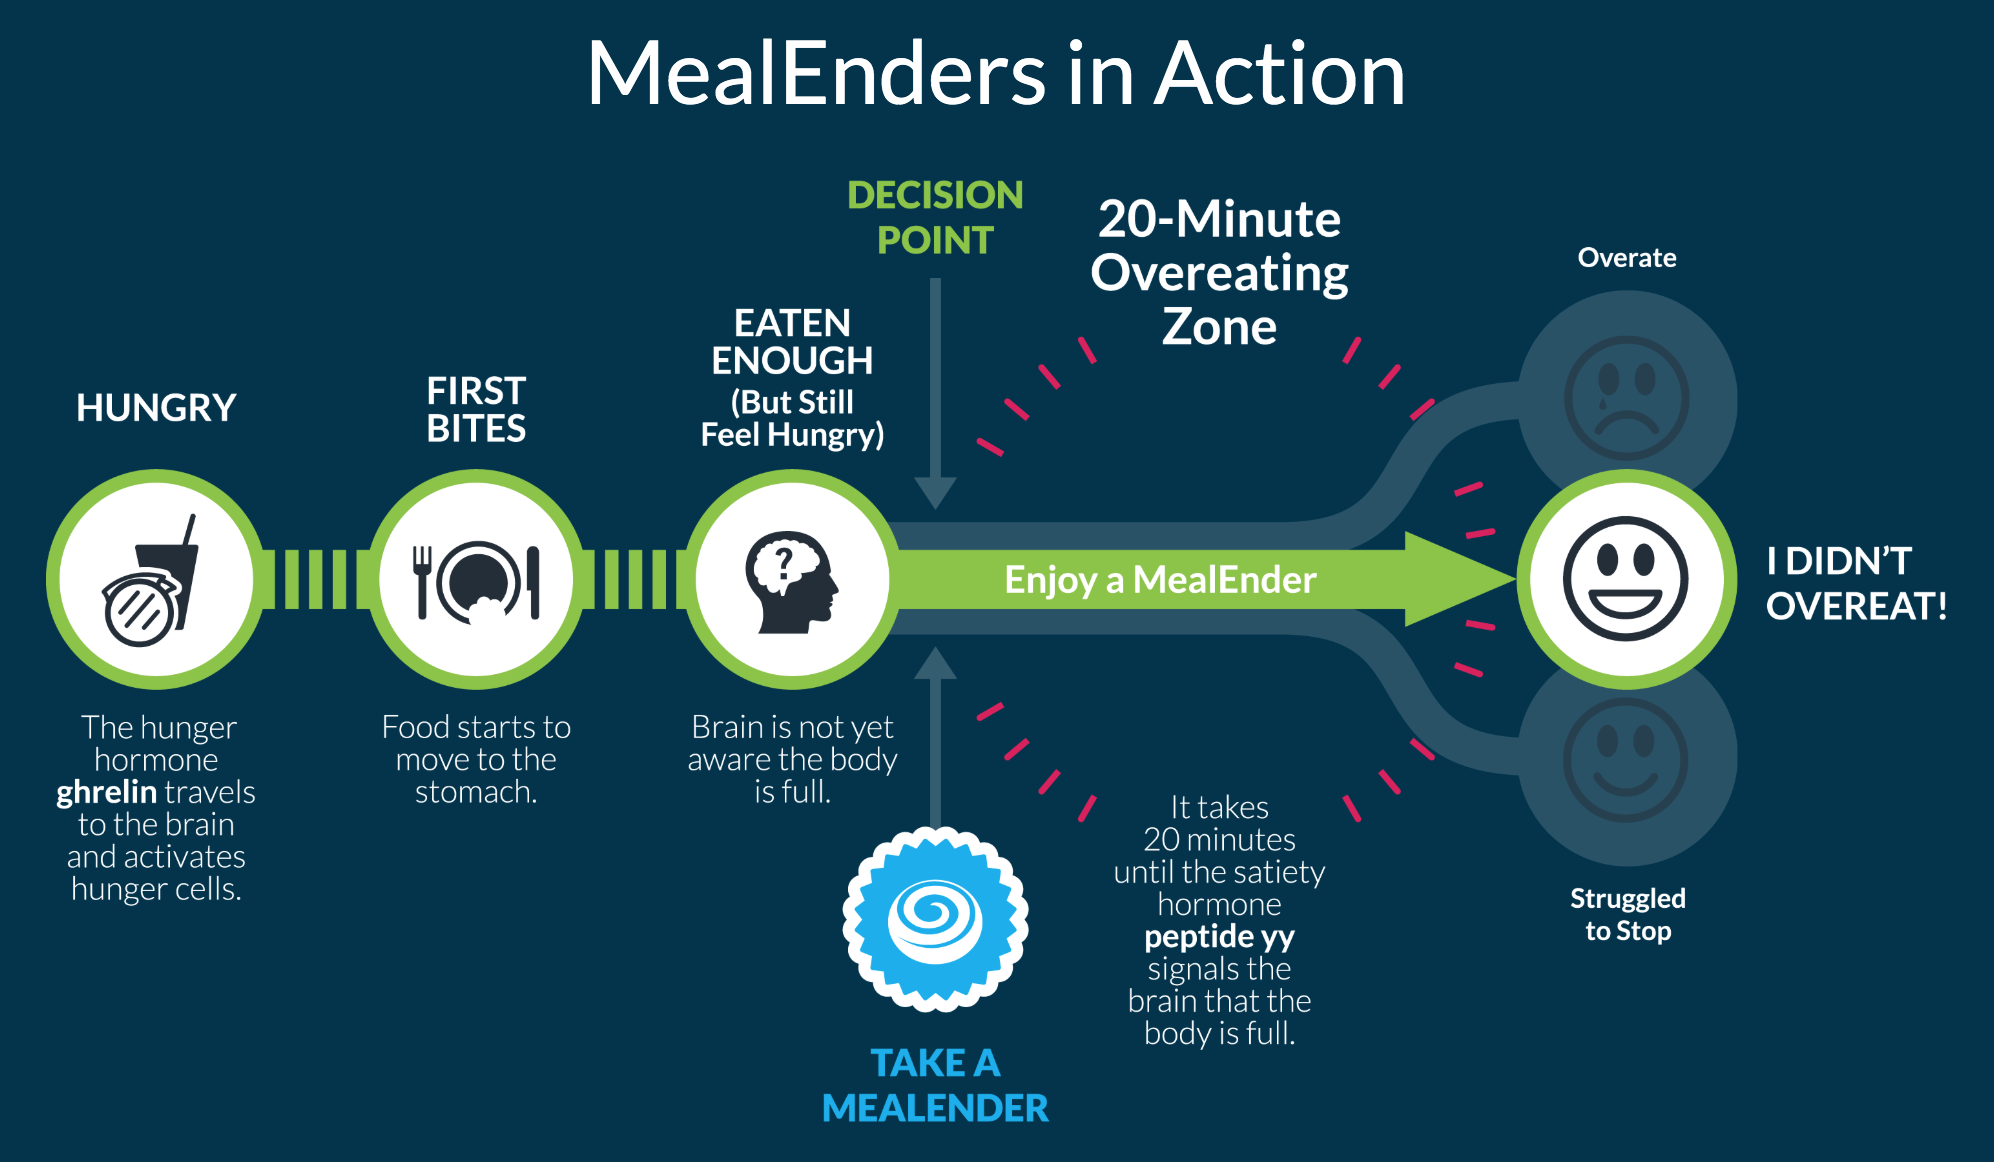 Graphic Courtesy of MealEnders